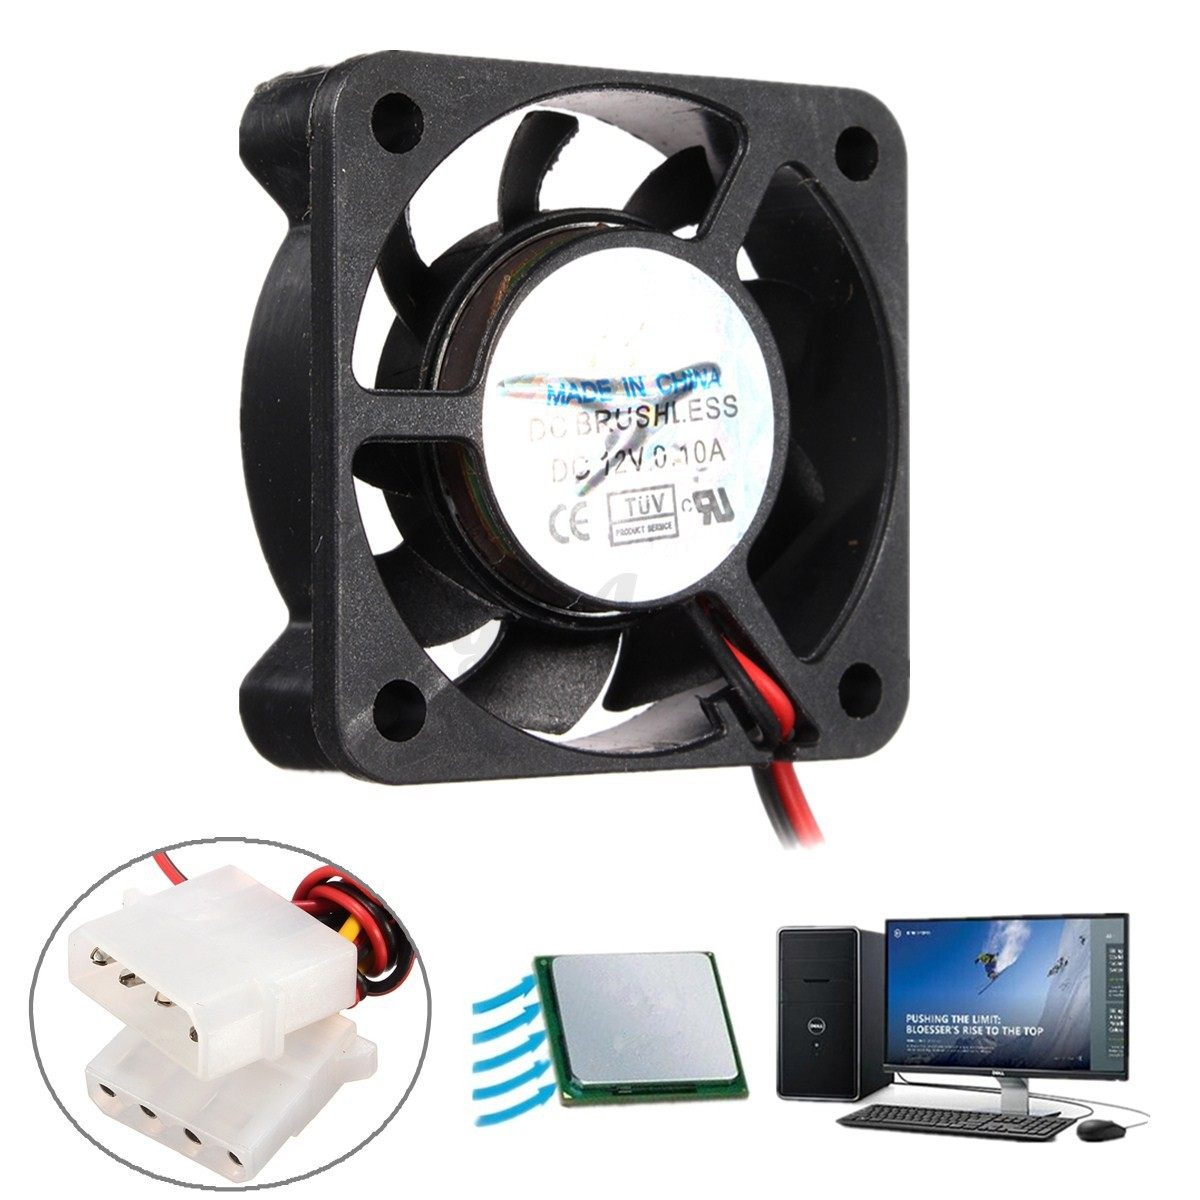 12v 4pin cpu ventilateur refoidisseur radiateur fan pr ordinateur pc 40x40x10mm ebay. Black Bedroom Furniture Sets. Home Design Ideas